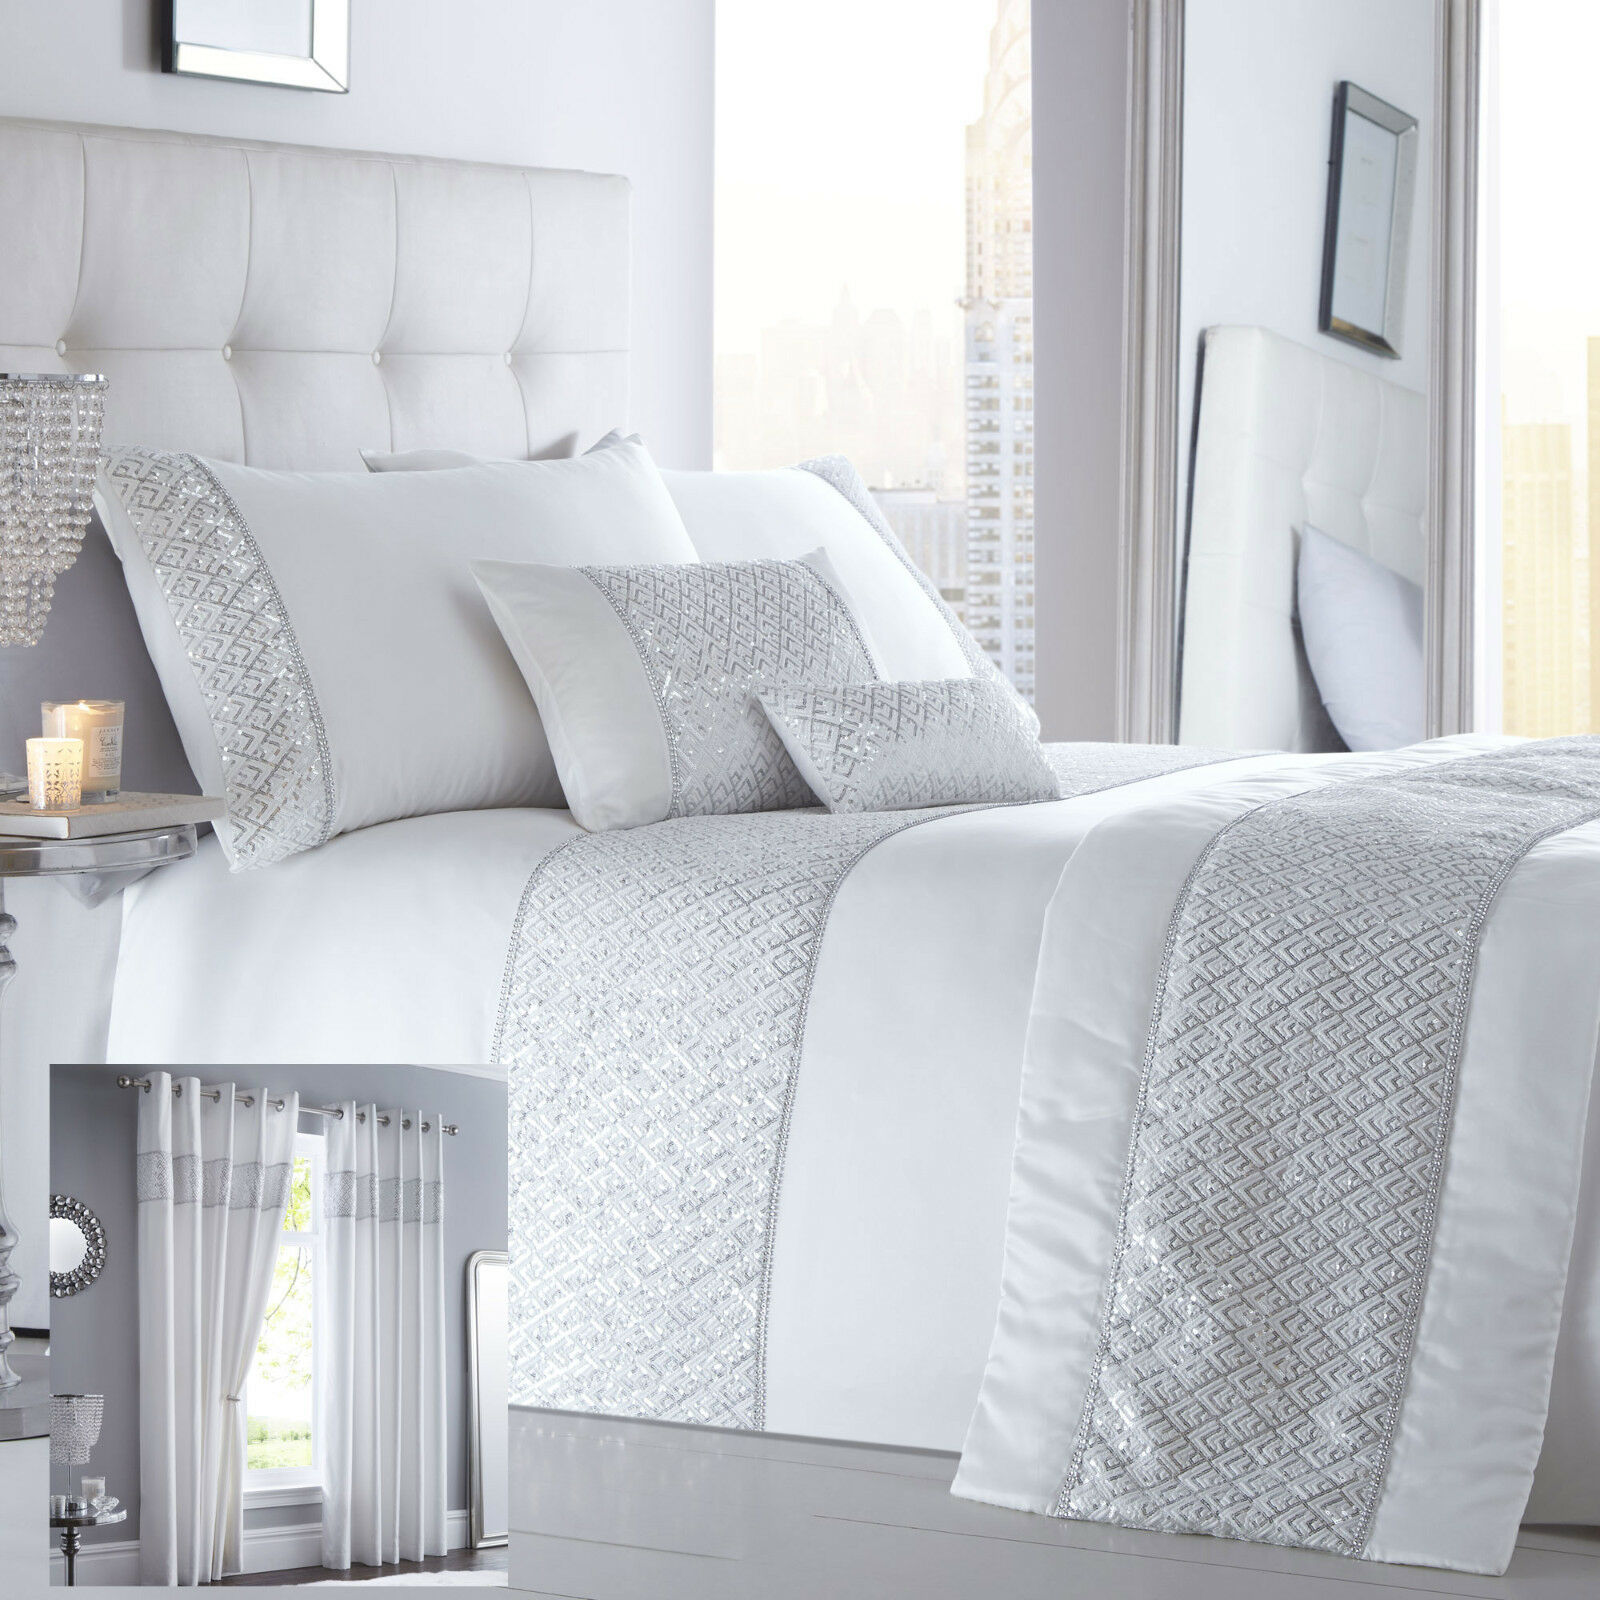 Shimmer Bedding Range White Choice of Duvet Sets Curtains Cushions & Bed Runner